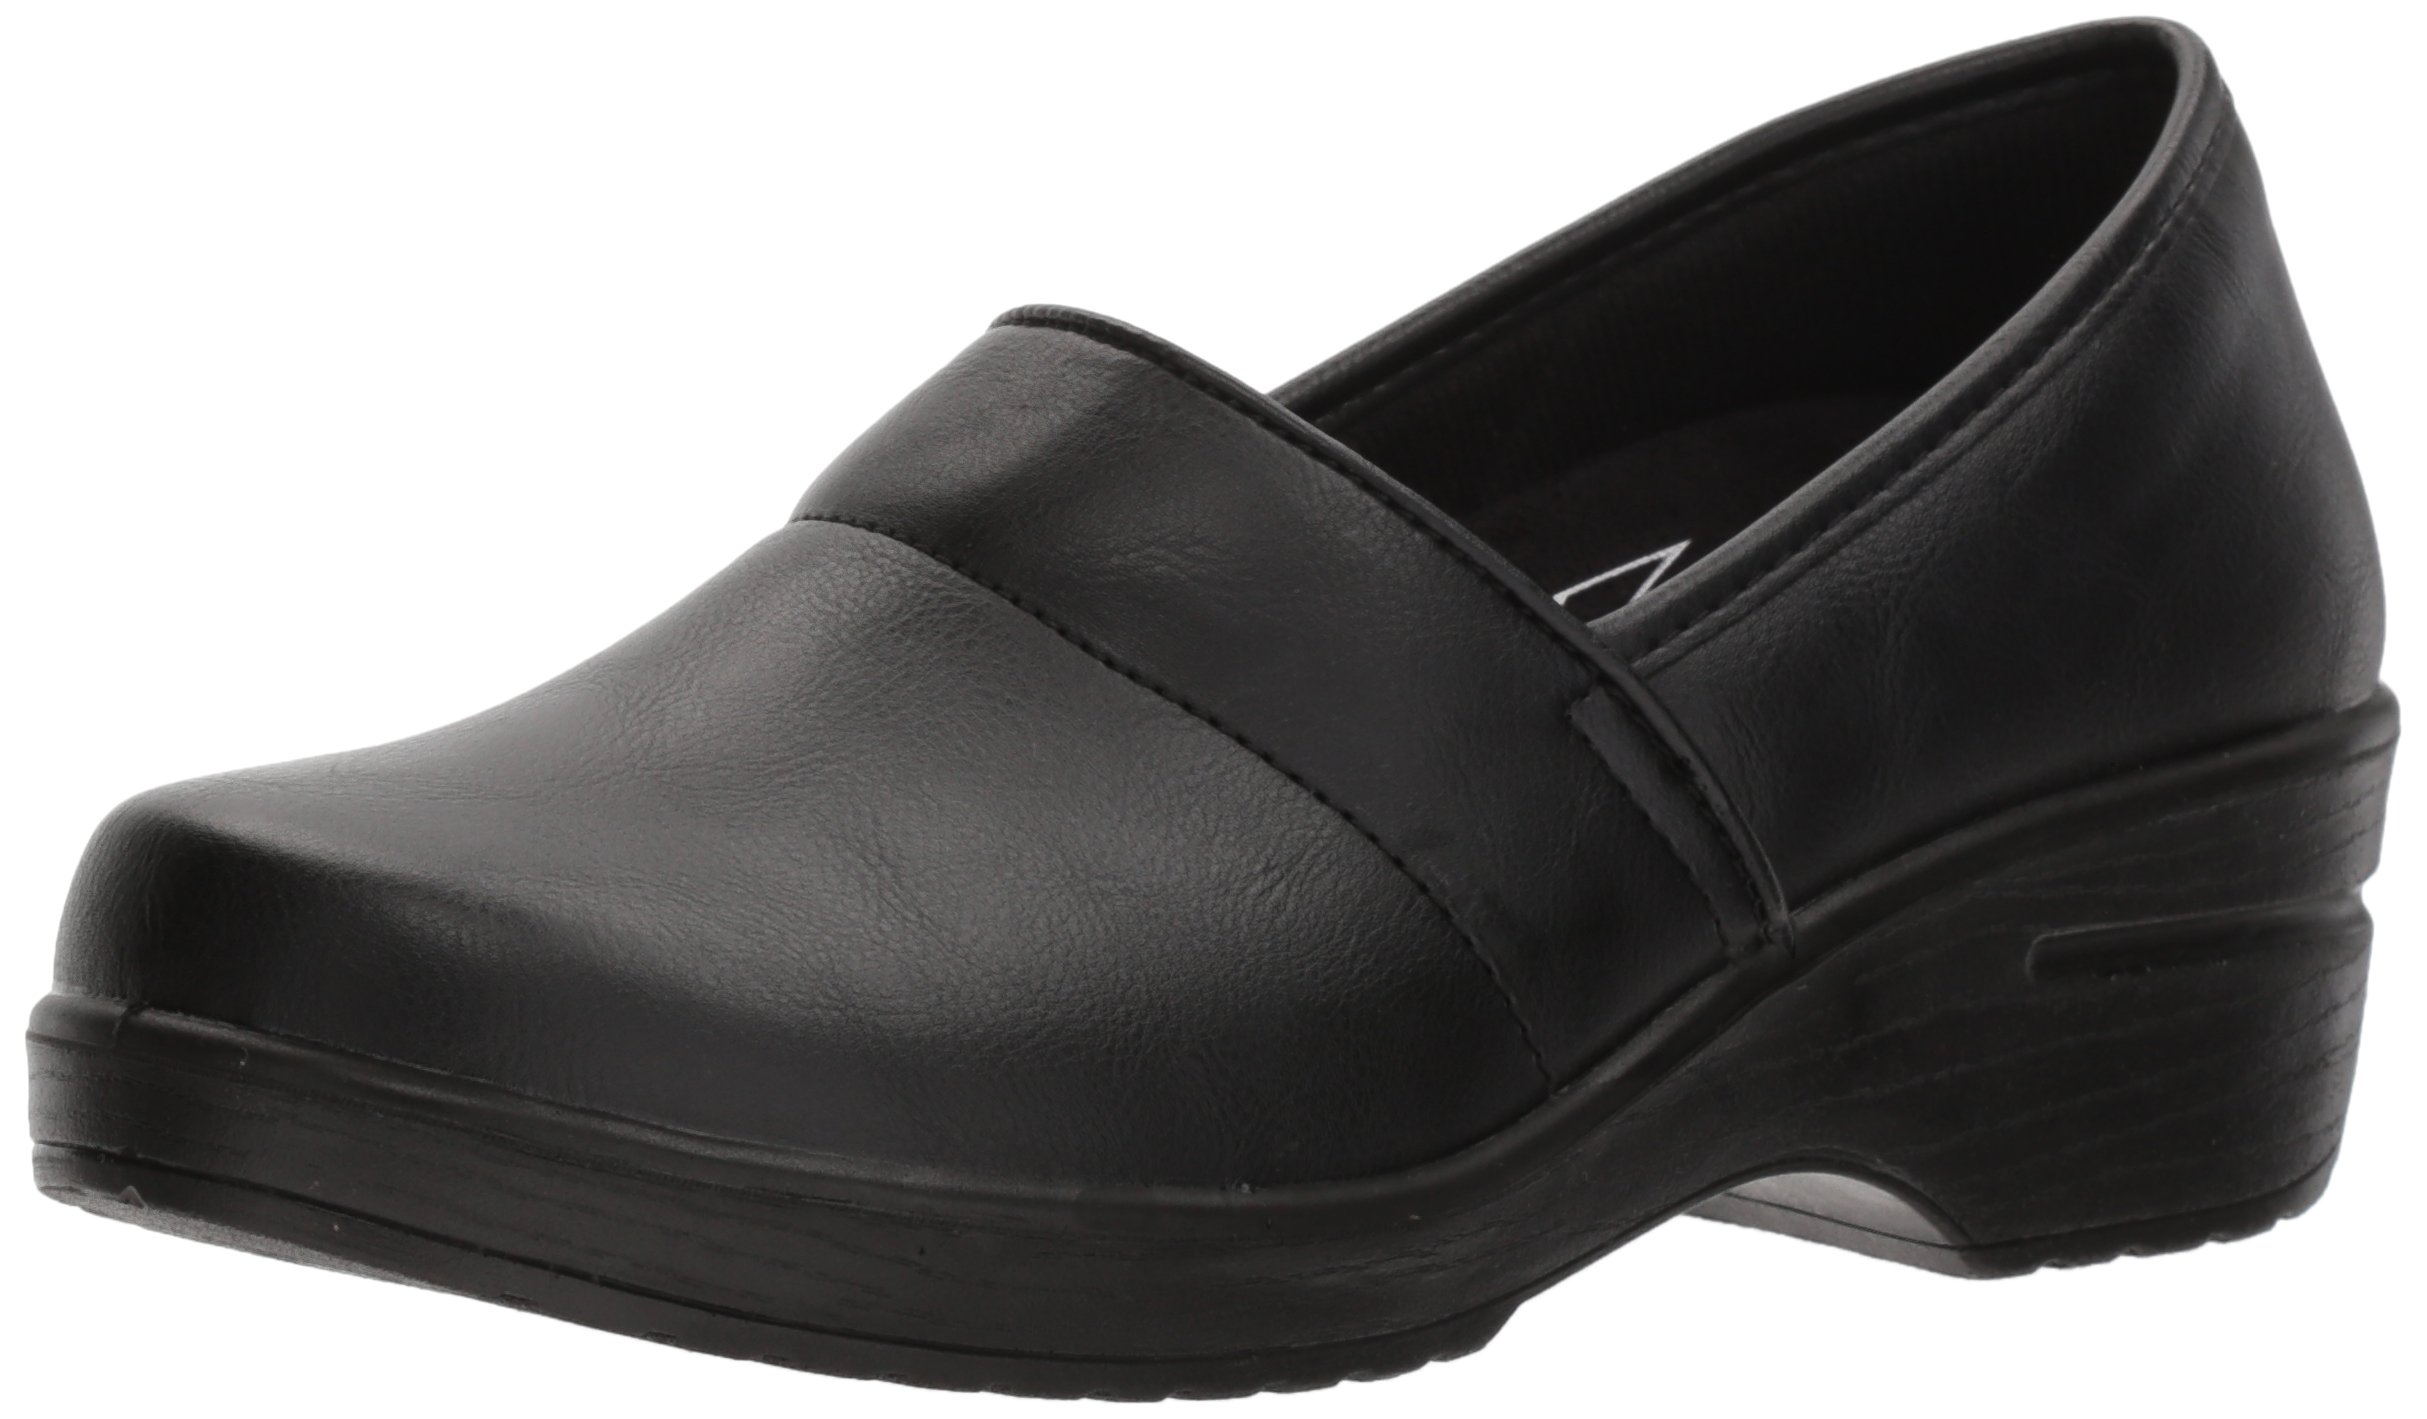 Easy Works Women's Lyndee Health Care Professional Shoe, Black, 8.5 W US by Easy Works (Image #1)